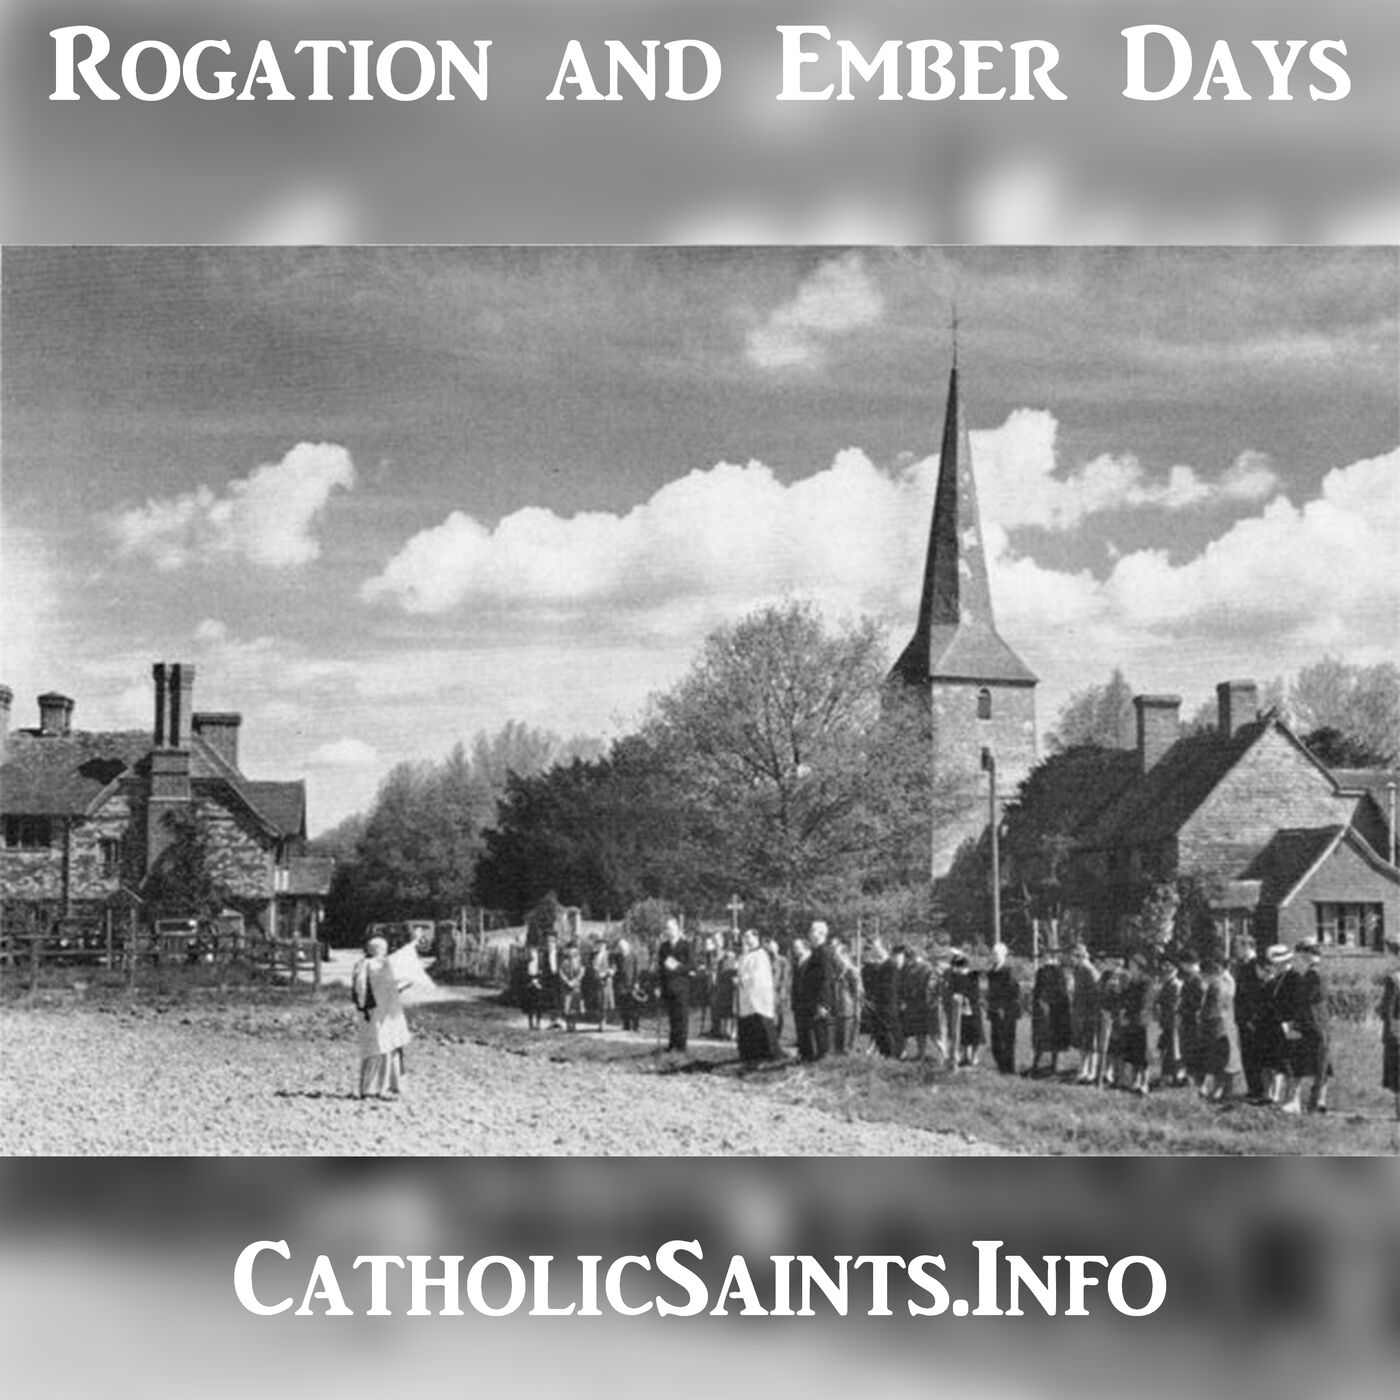 Rogation Days and Ember Days